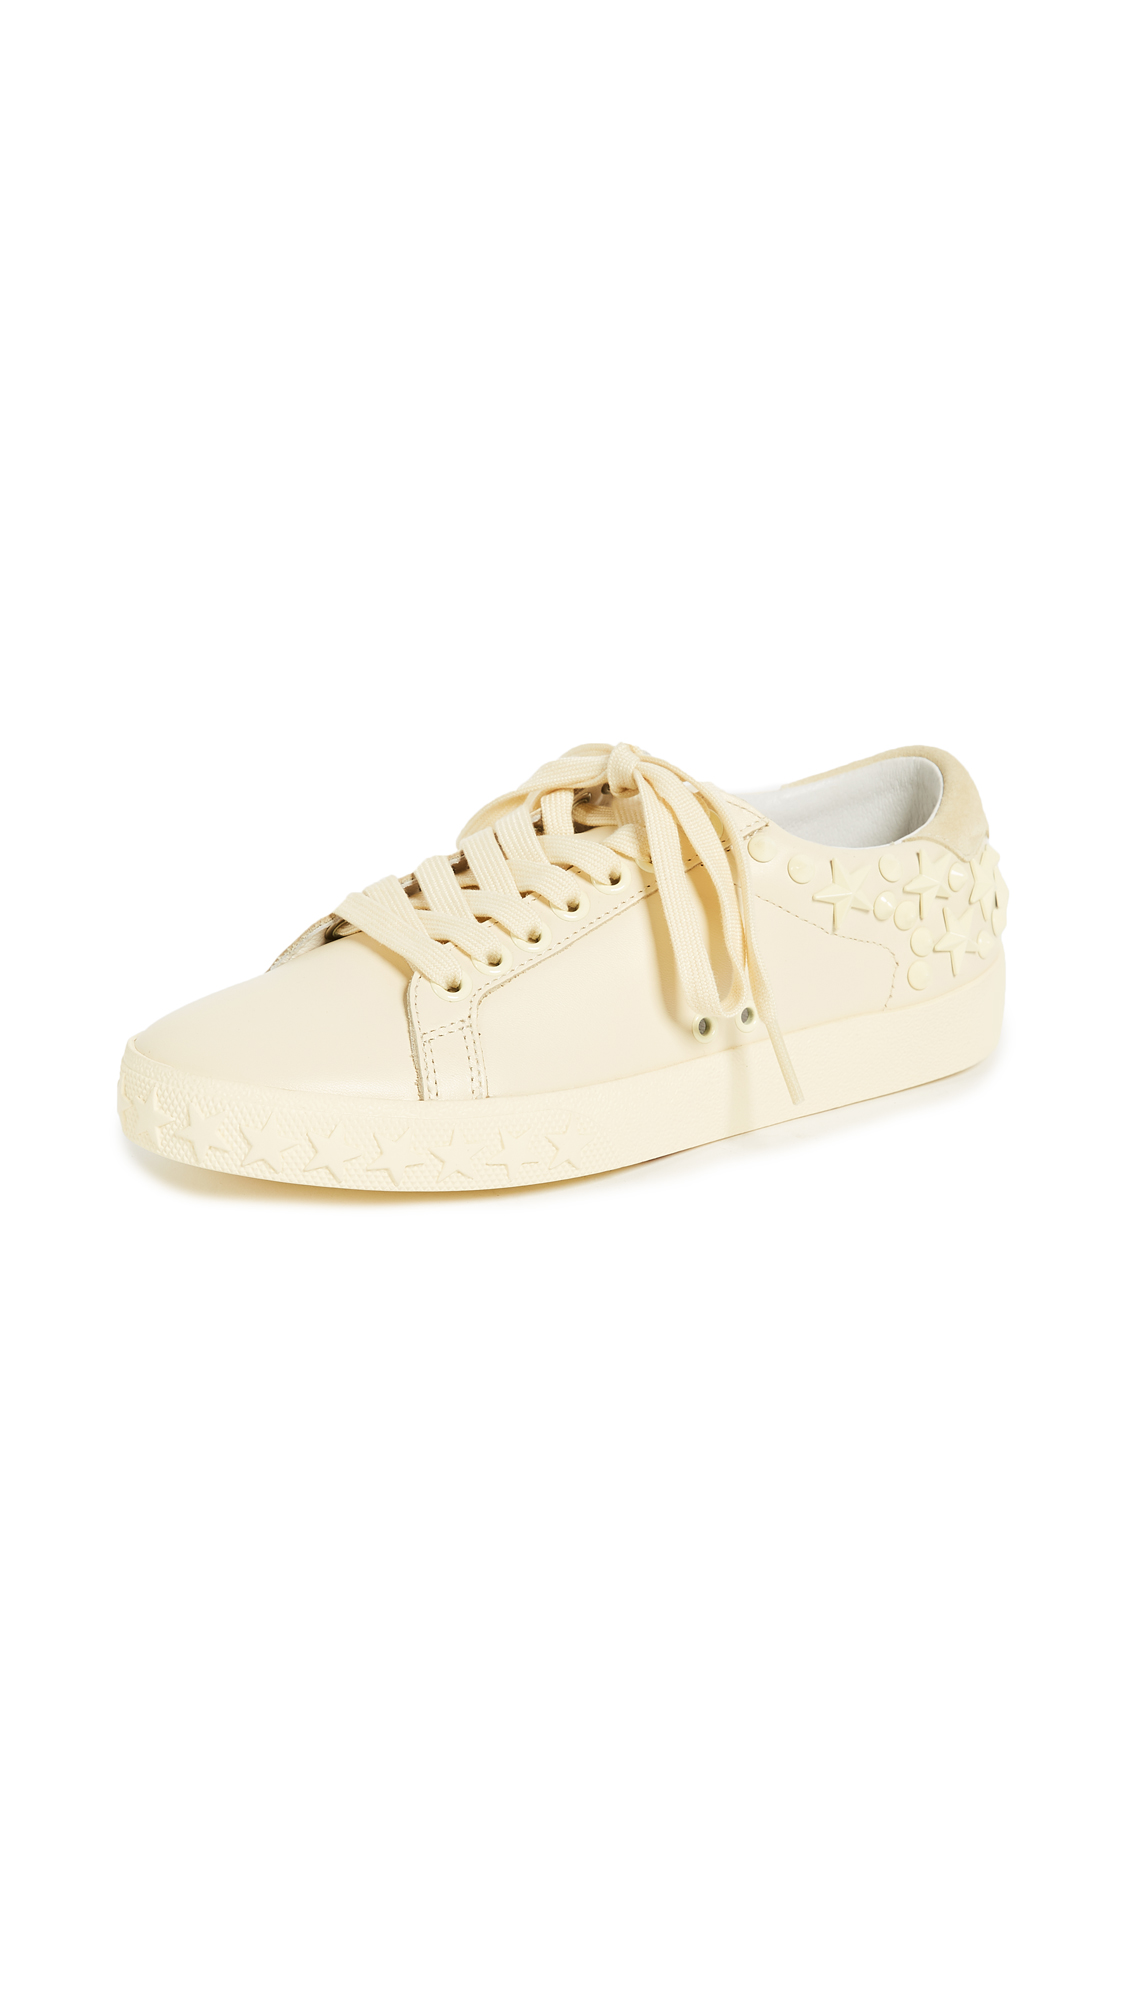 Ash Dazed Sneakers - New Chick/Chick